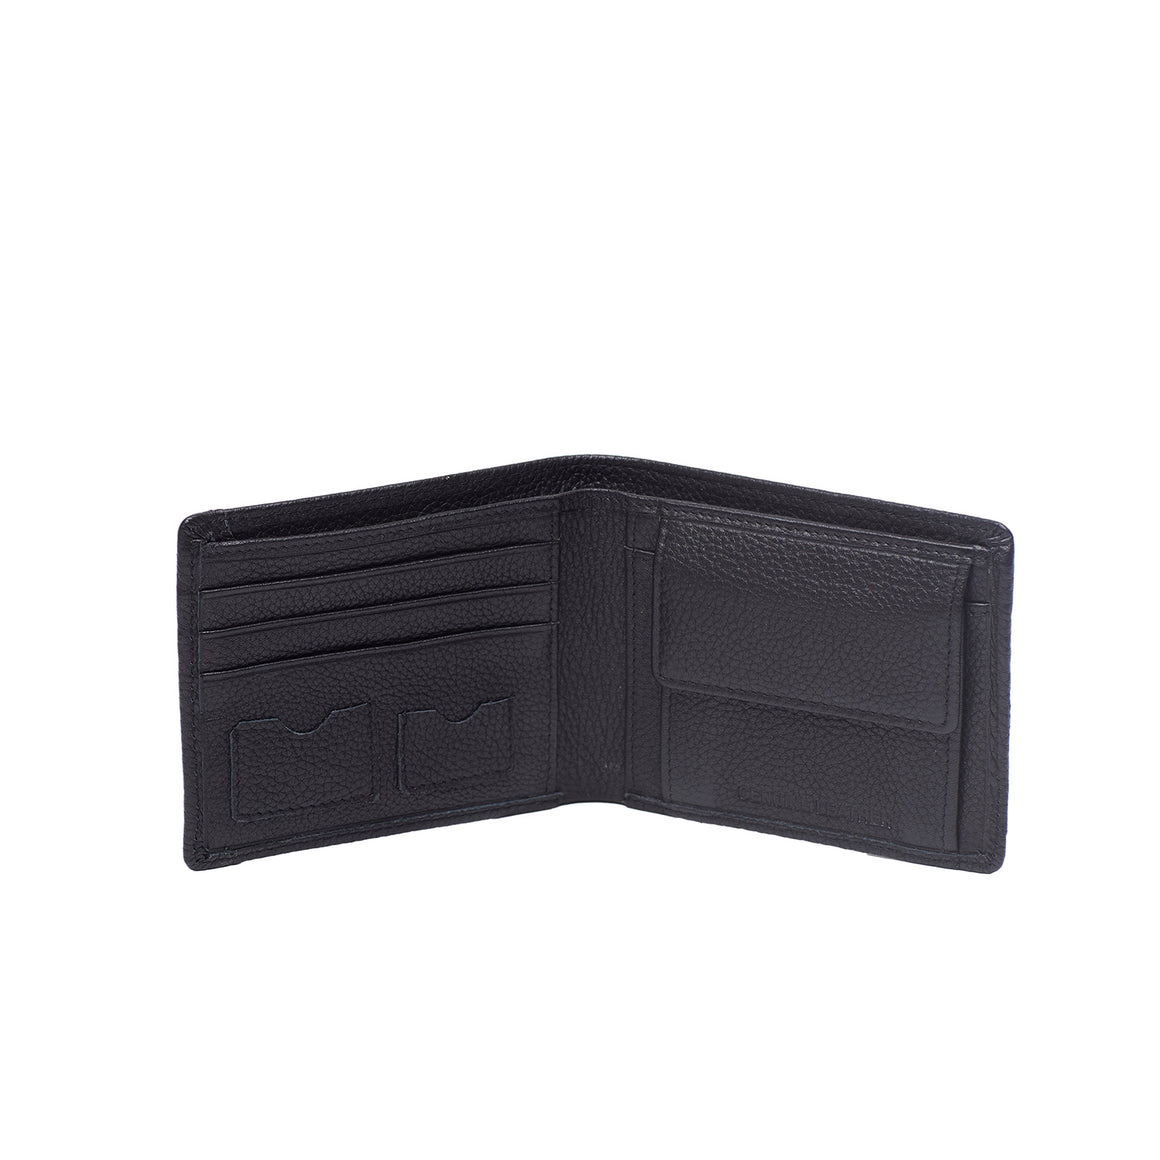 WT 0032 - TOHL BRESSO MEN'S WALLET - CHARCOAL BLACK